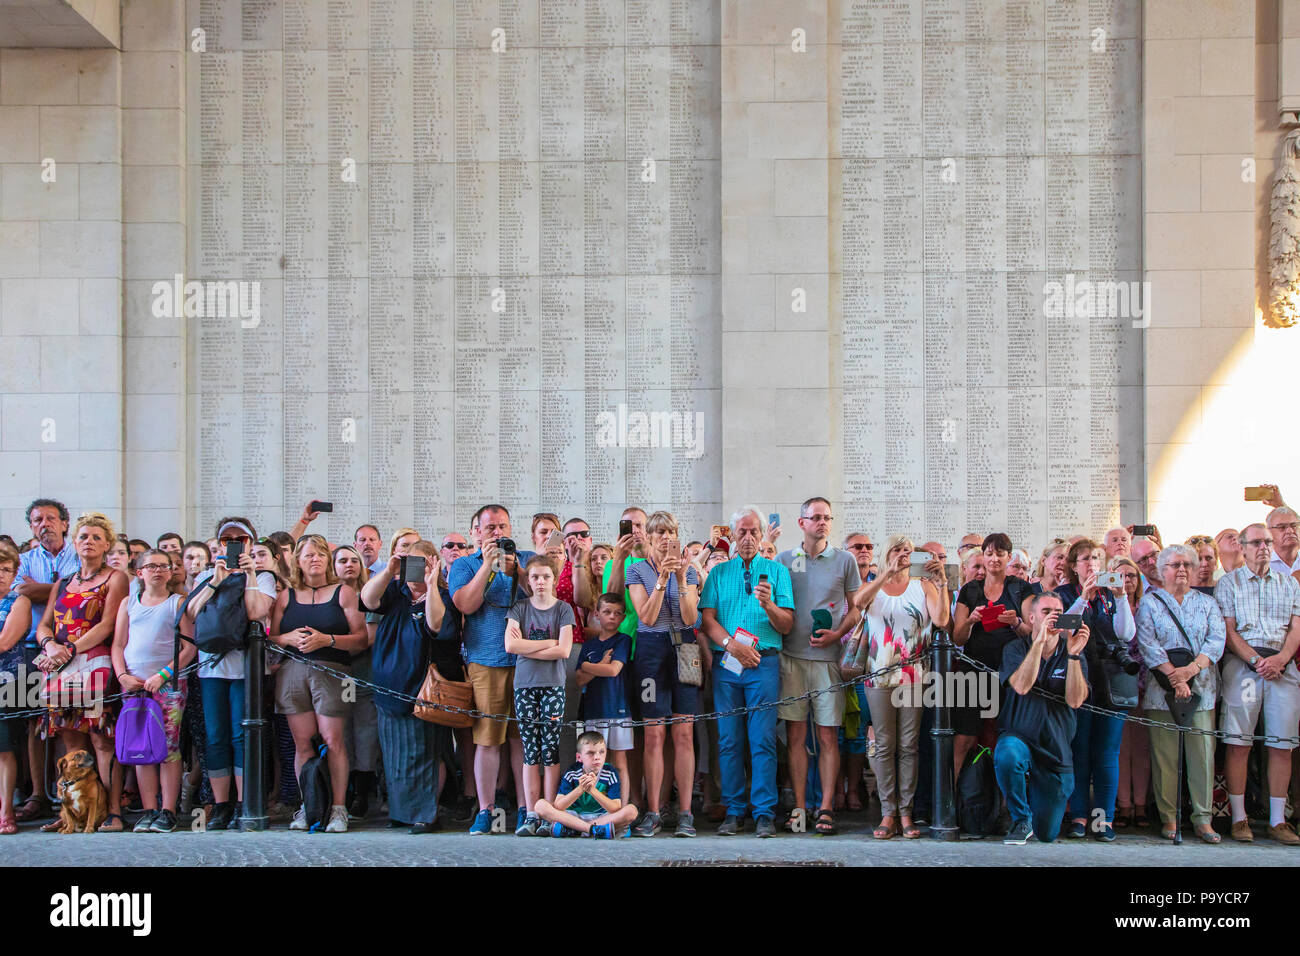 Members of the public in attendance at the nightly memorial service of remembrance at the Menin Gate, Ypres, Belgium - Stock Image